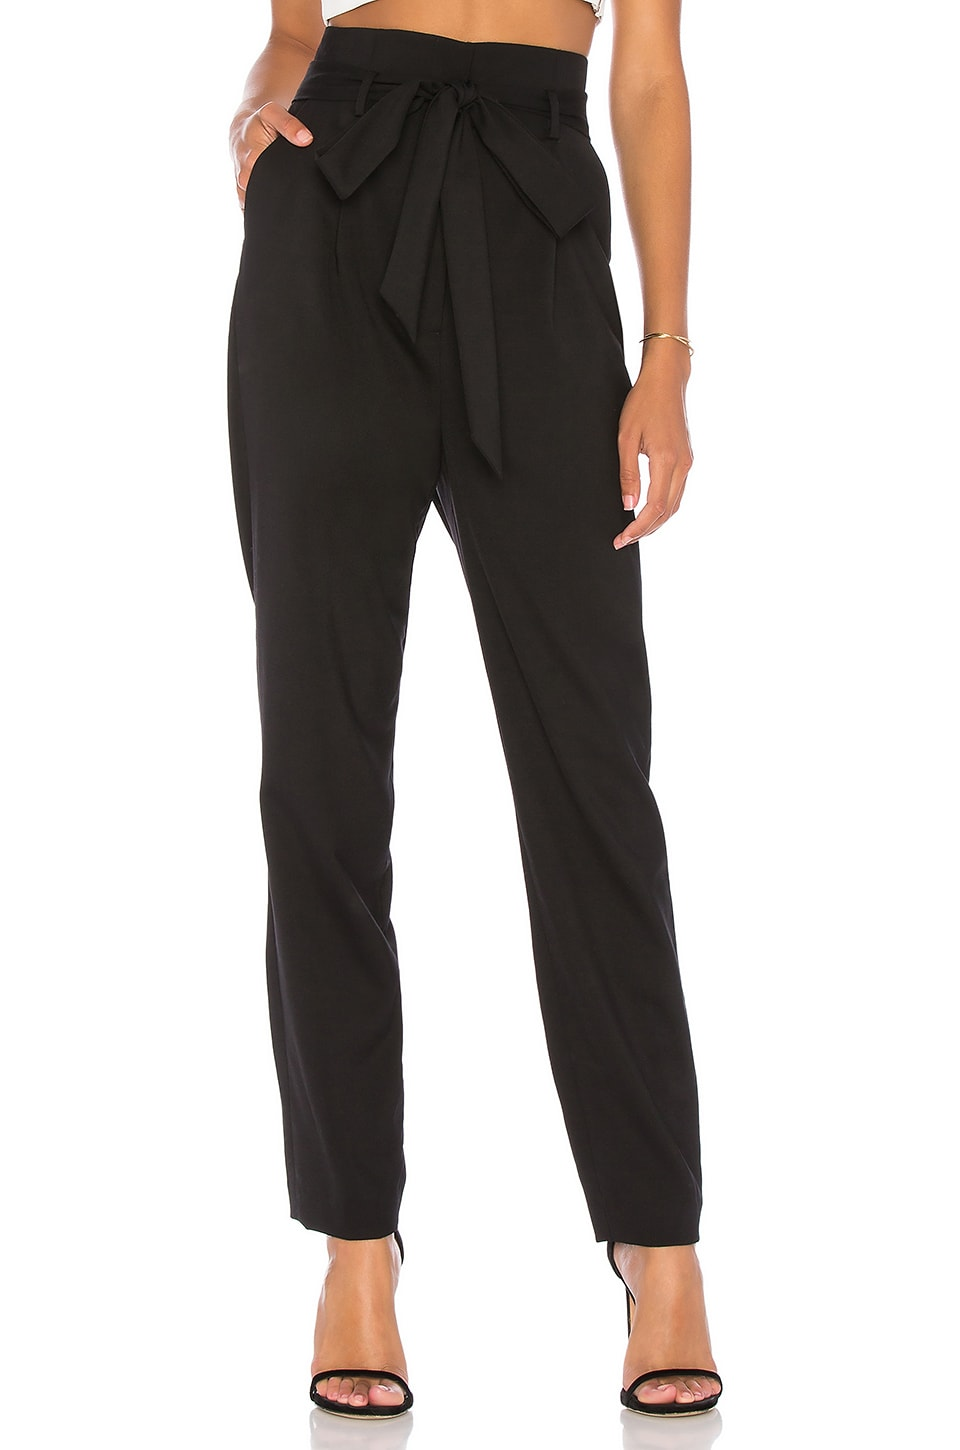 Sevilla Highwaist Pant